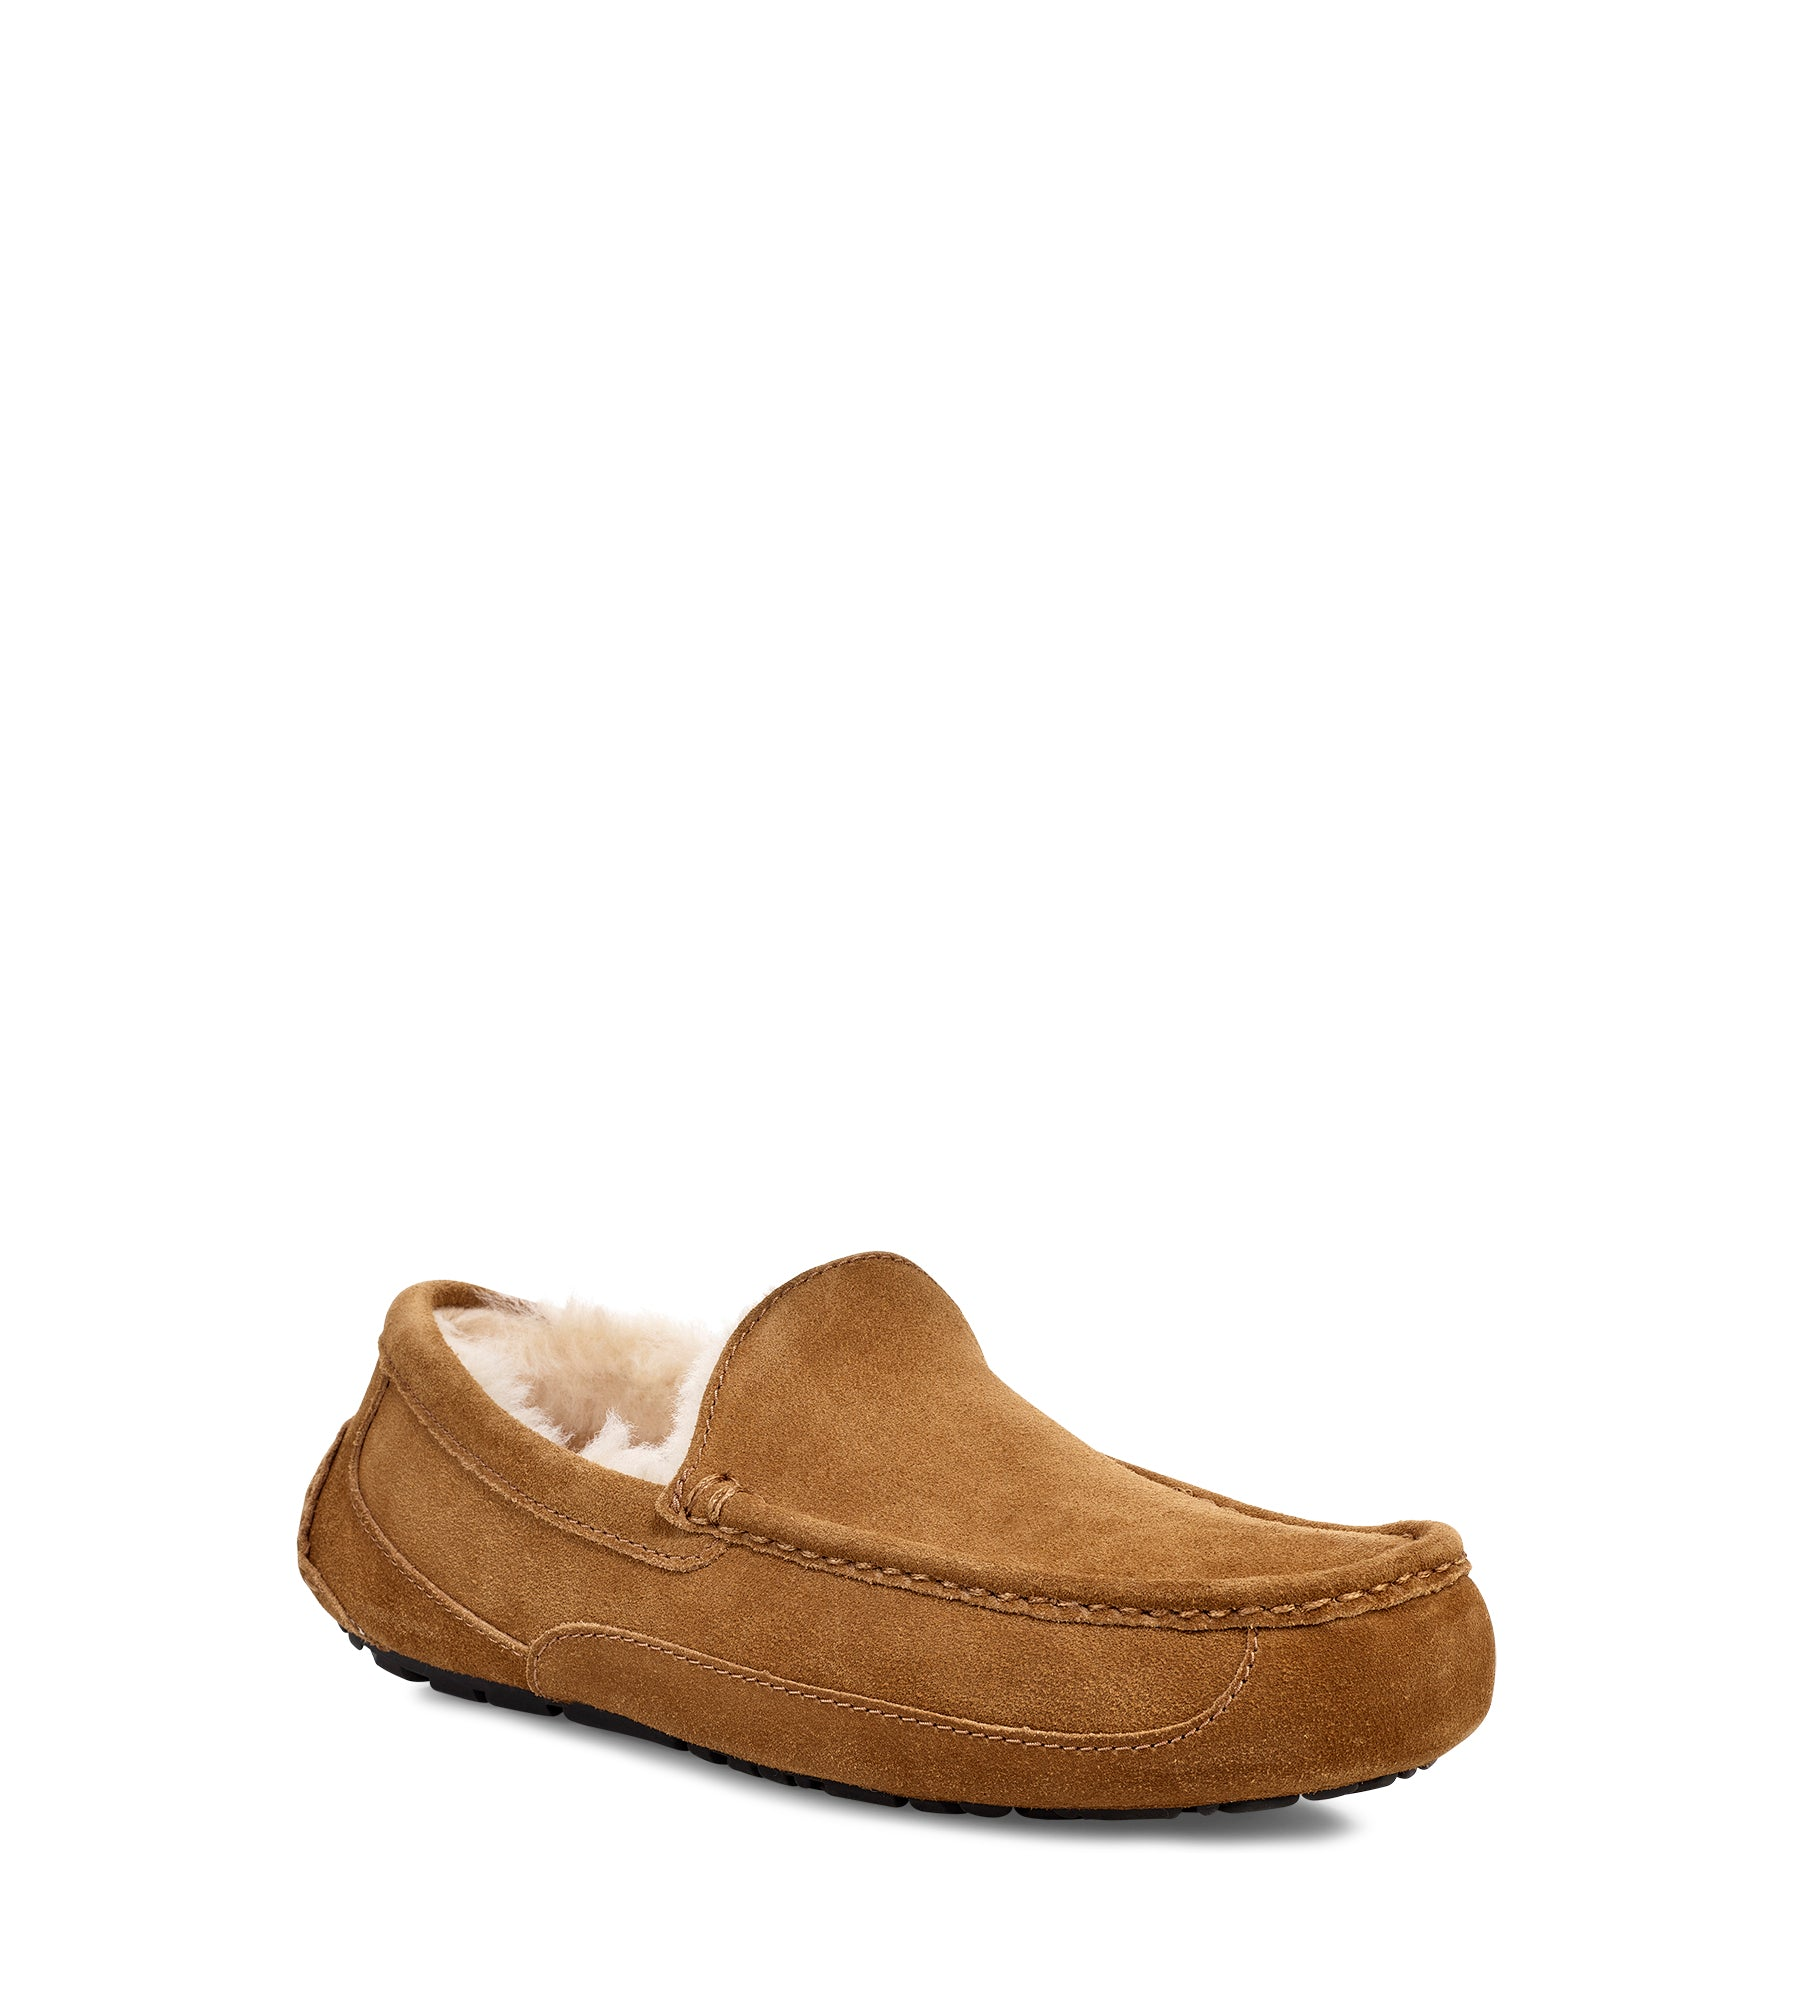 075cd17b7f3 UGG Australia Men's Ascot in Chestnut Suede – Welcome to Footprint27.com